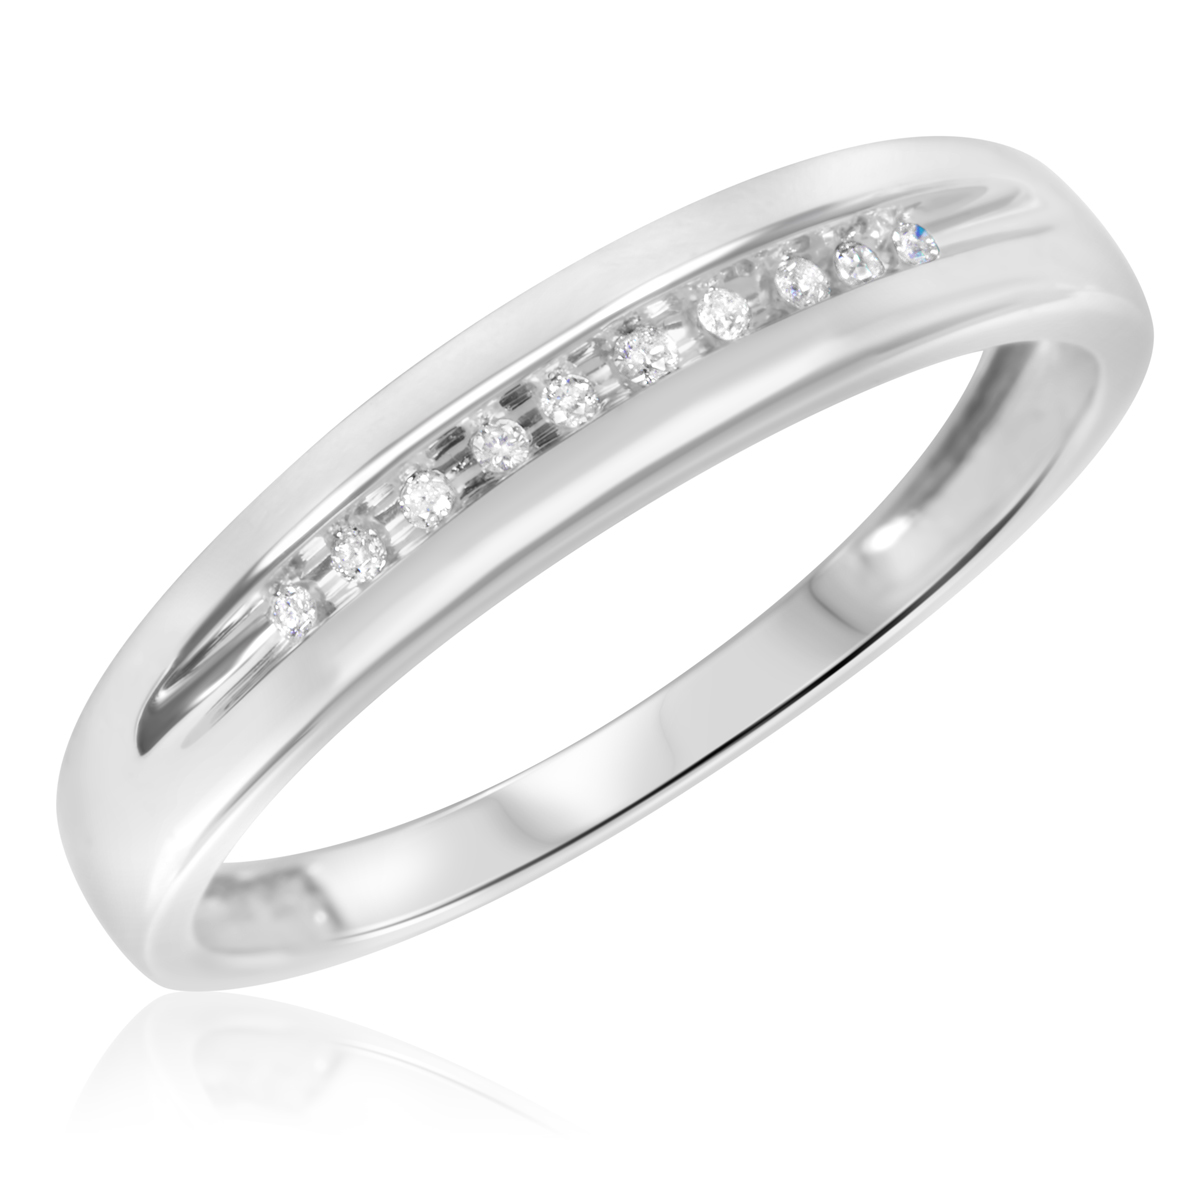 mens wedding band 1 4 ct tw blue diamonds 10k white gold mens diamond wedding bands Hover to zoom